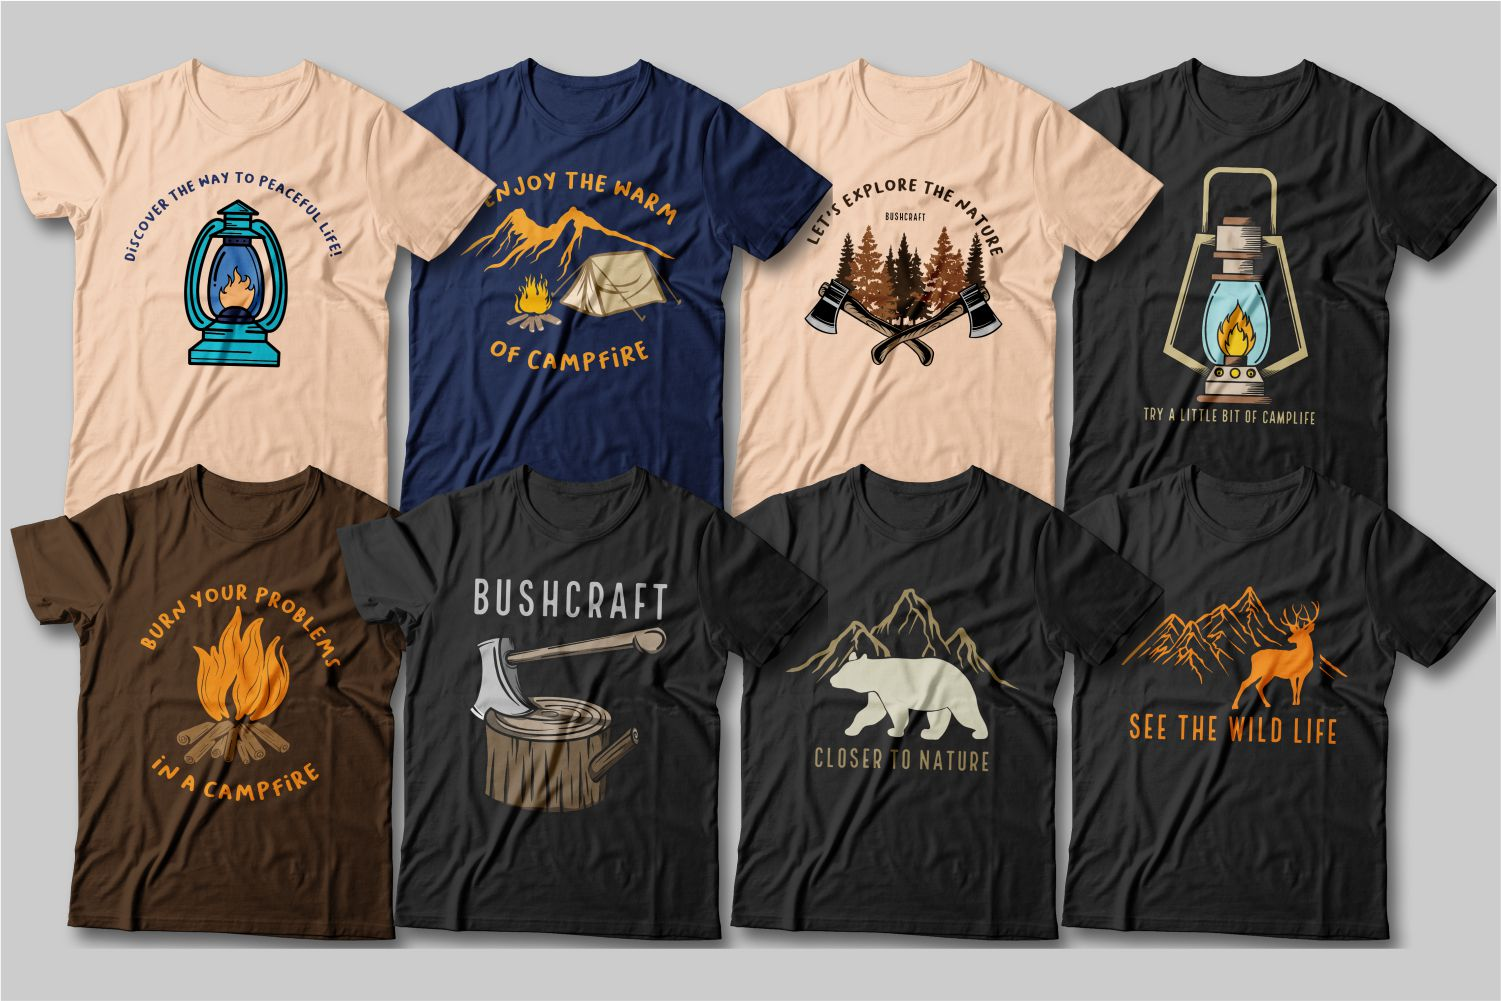 Various T-shirts for outdoor enthusiasts with a picture of a campfire and accessories for a hike.